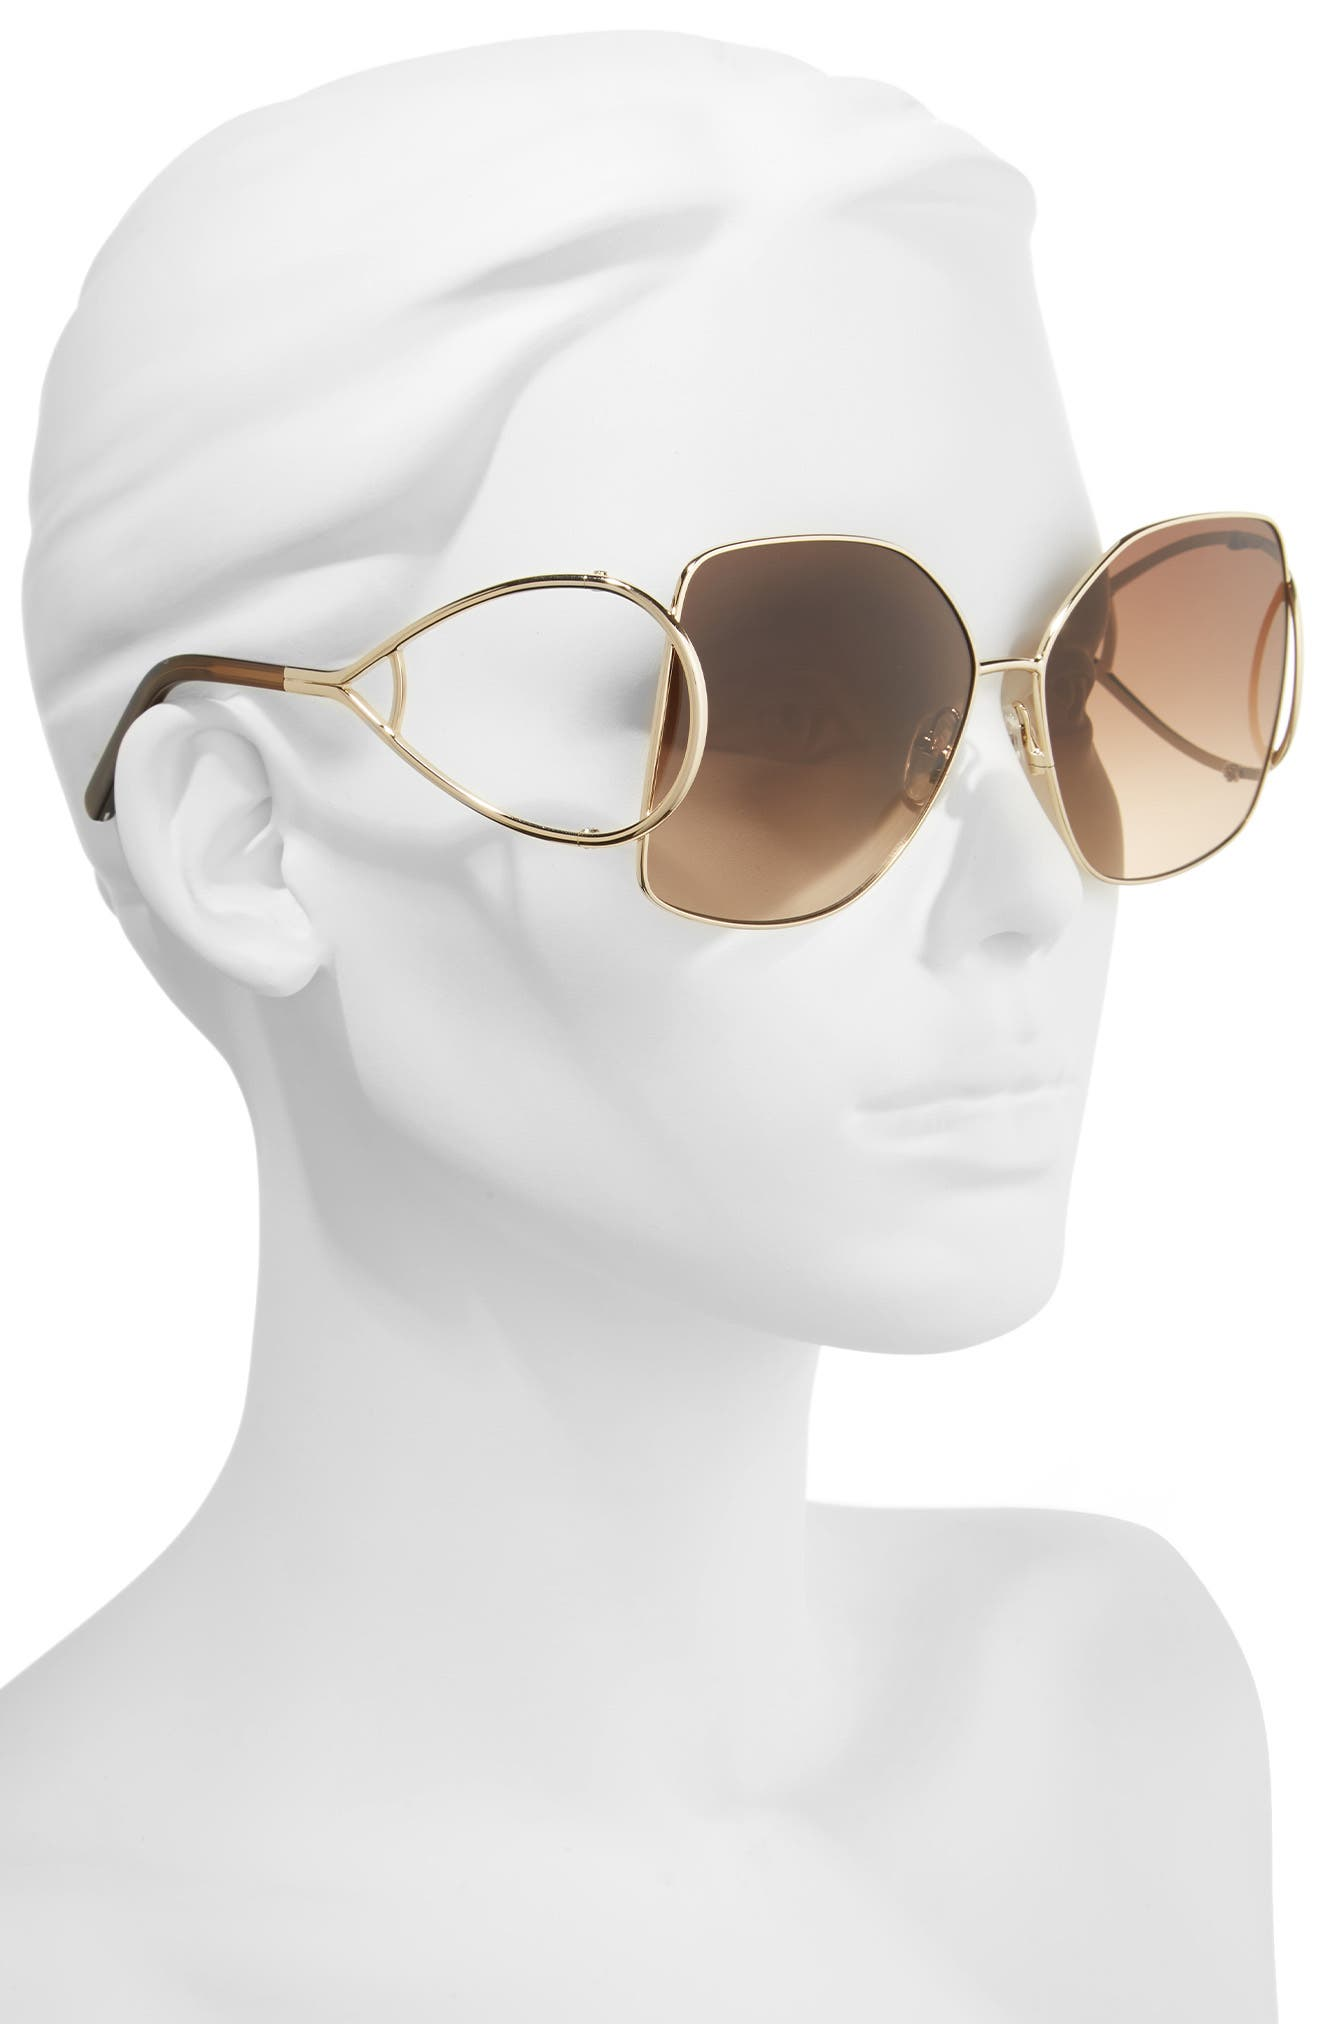 63mm Wrapover Frame Sunglasses,                             Alternate thumbnail 2, color,                             Gold/ Brown